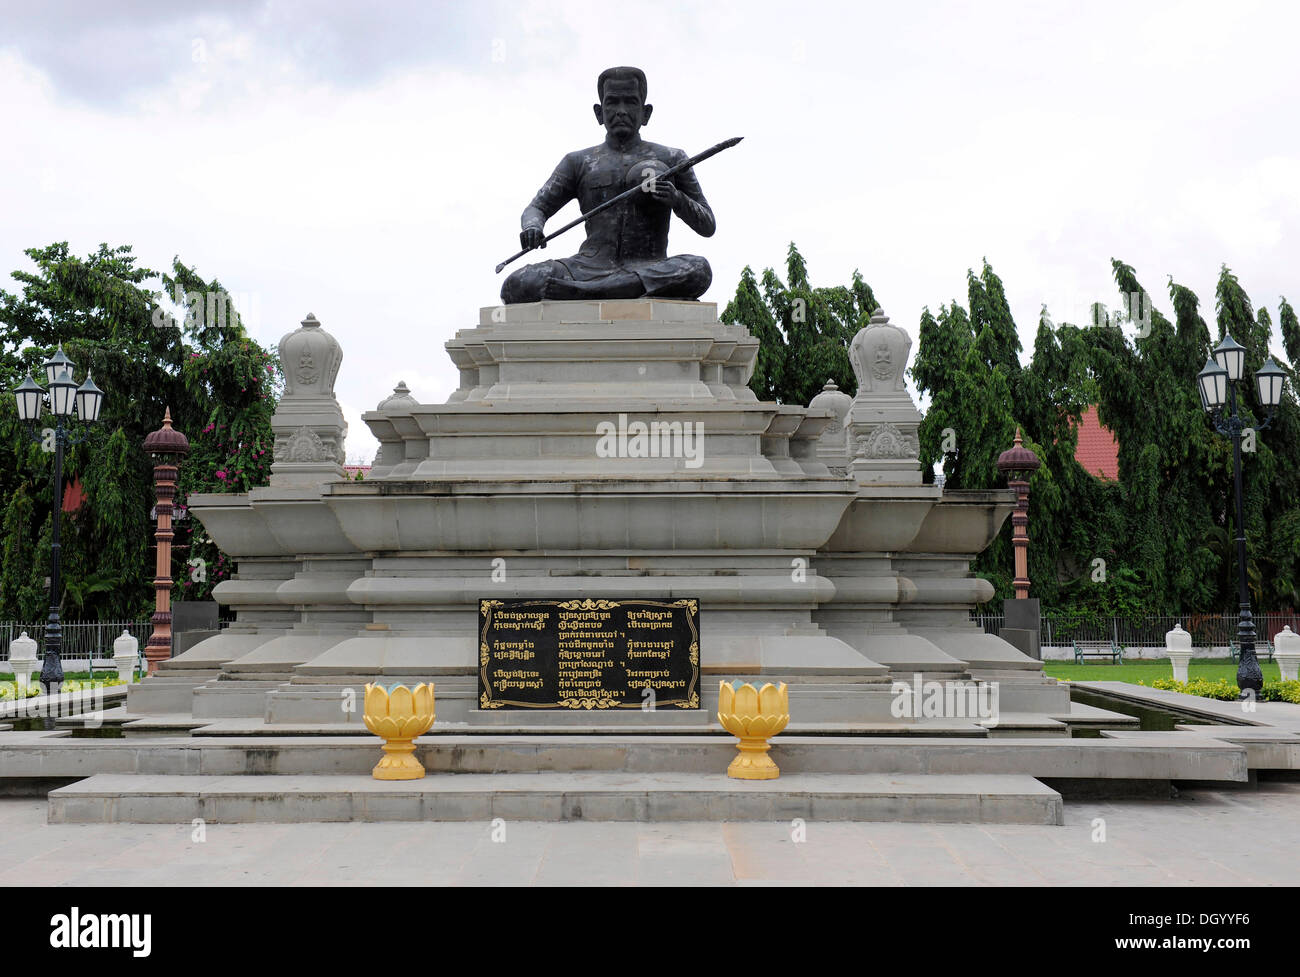 Statue of Krom Ngoy statue in Phnom Penh, Cambodia, Asia - Stock Image